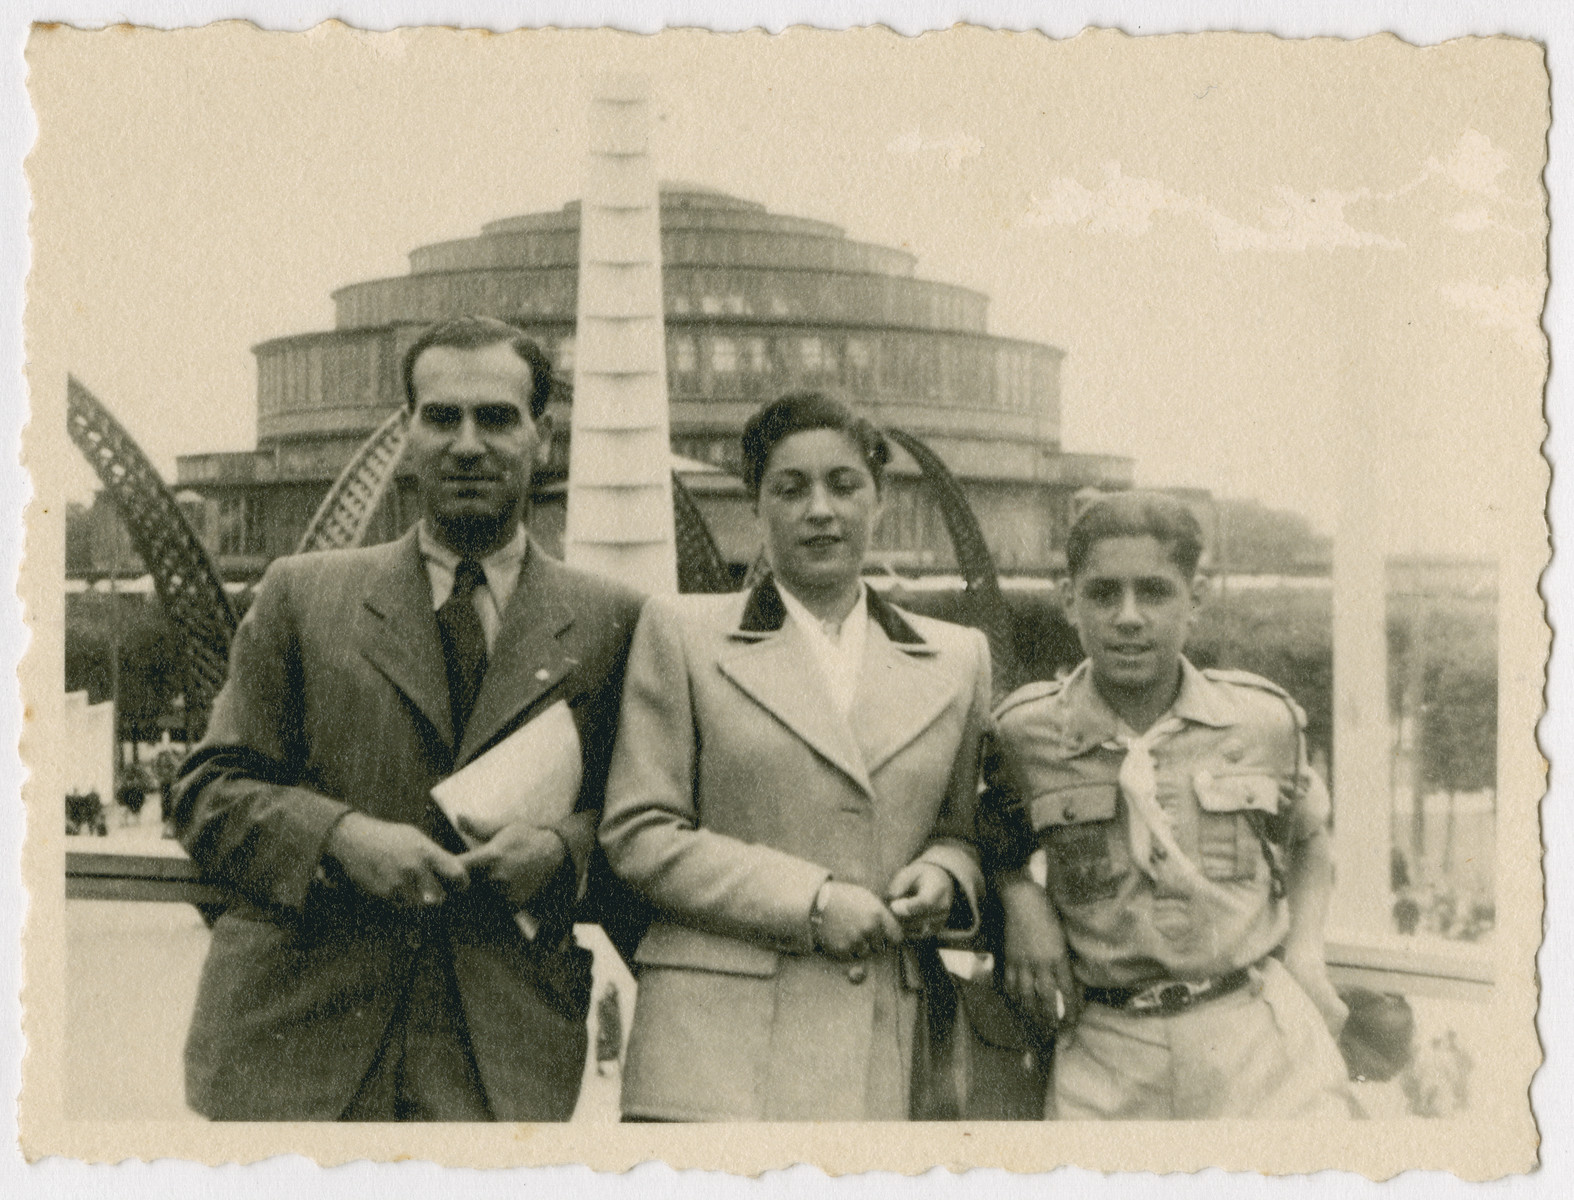 Marian Kwasniewski visits Wroclaw with his parents Josef and Helan.